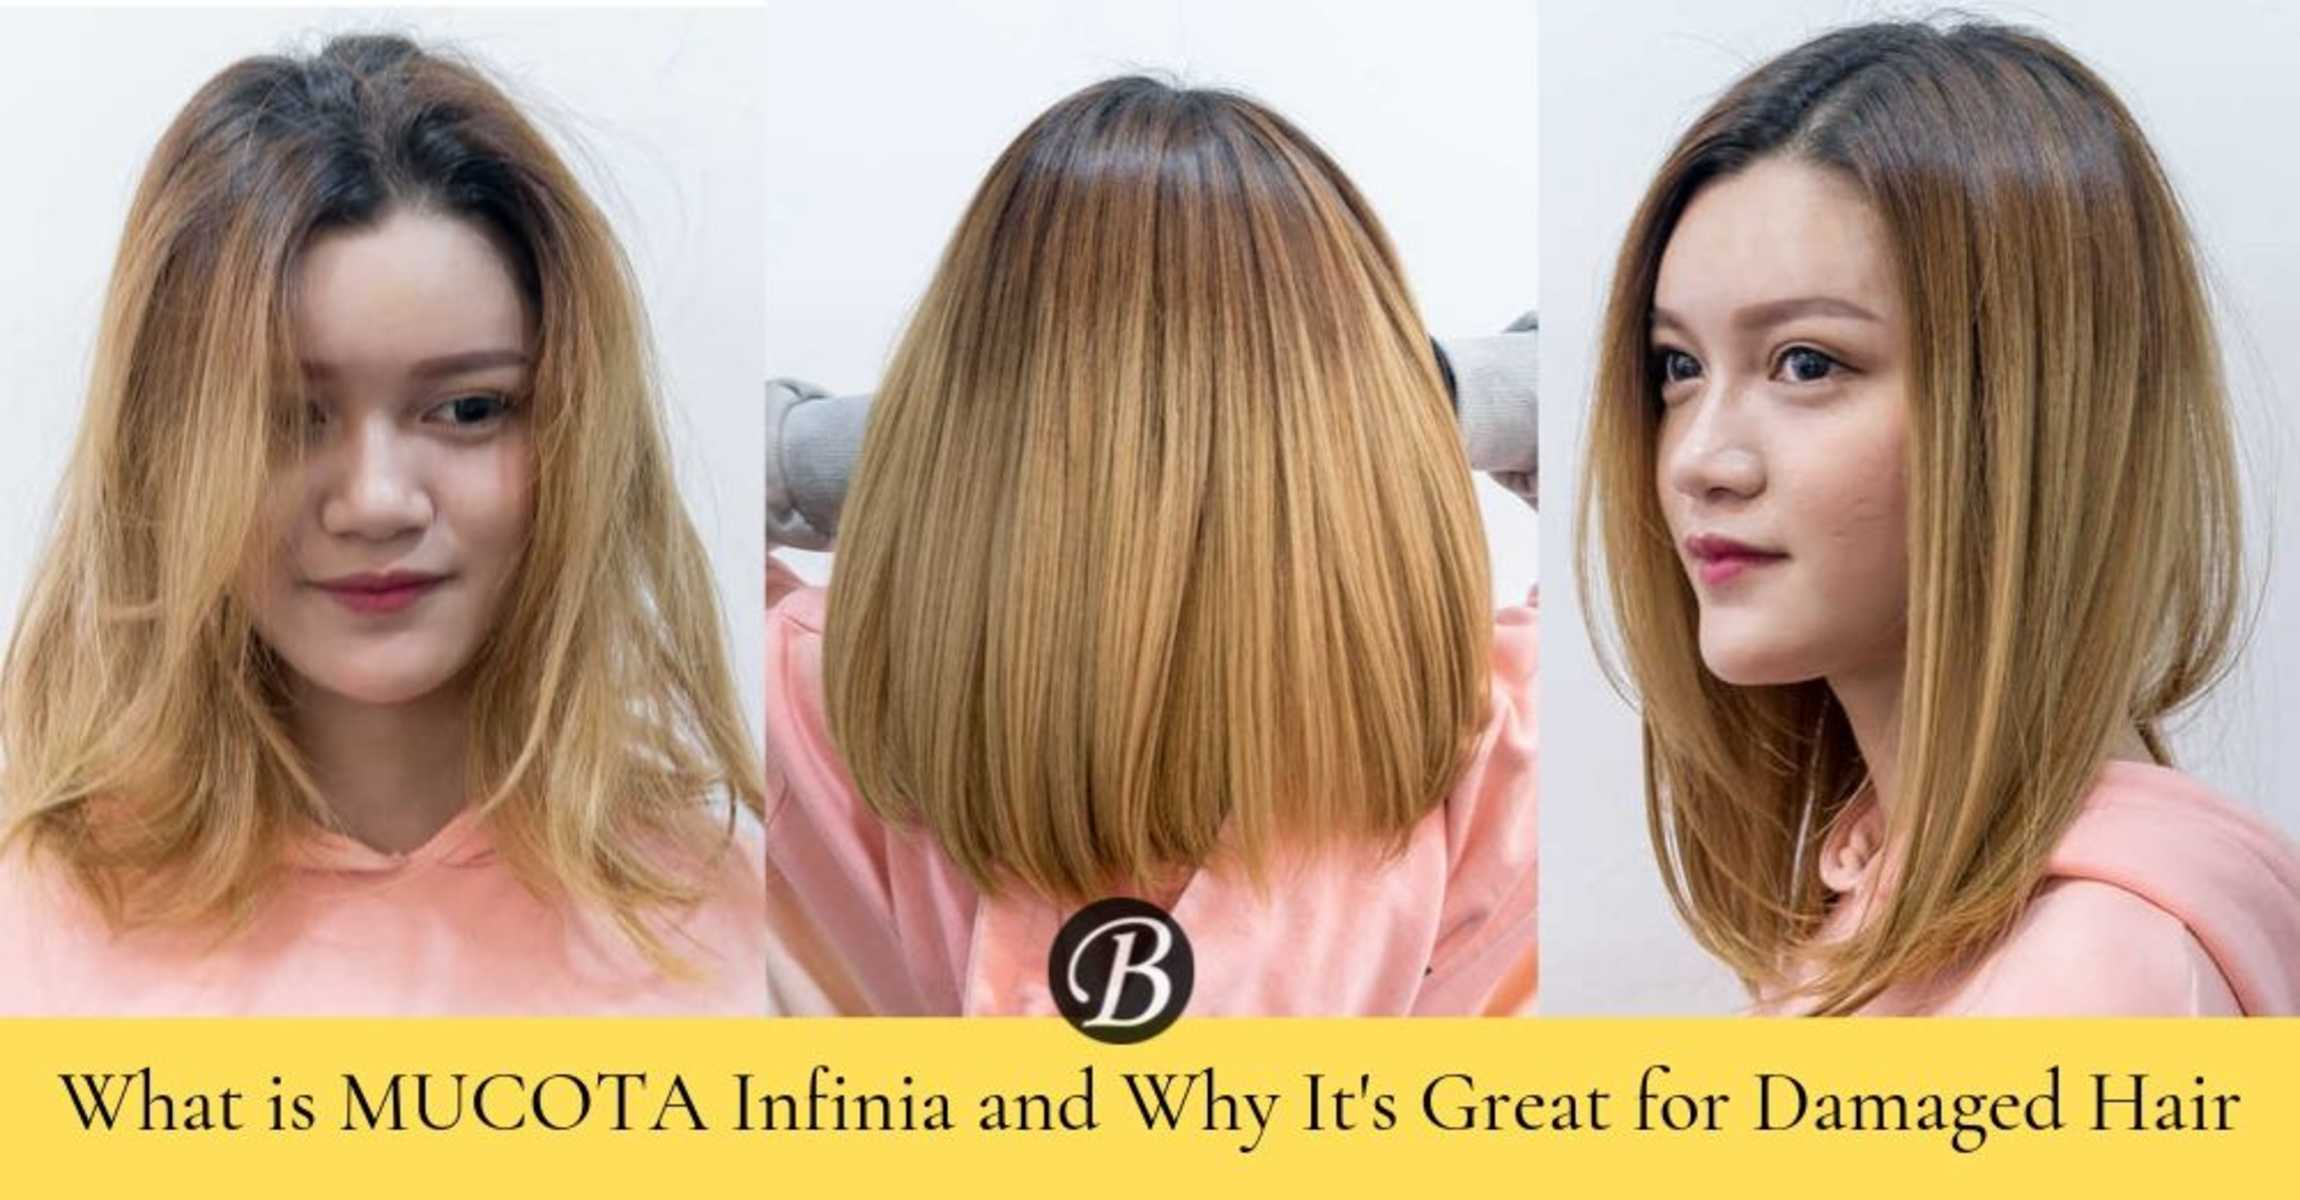 What Is the Mucota Infinia Hair Treatment & 5 Reasons Why It's Good For Damaged Hair